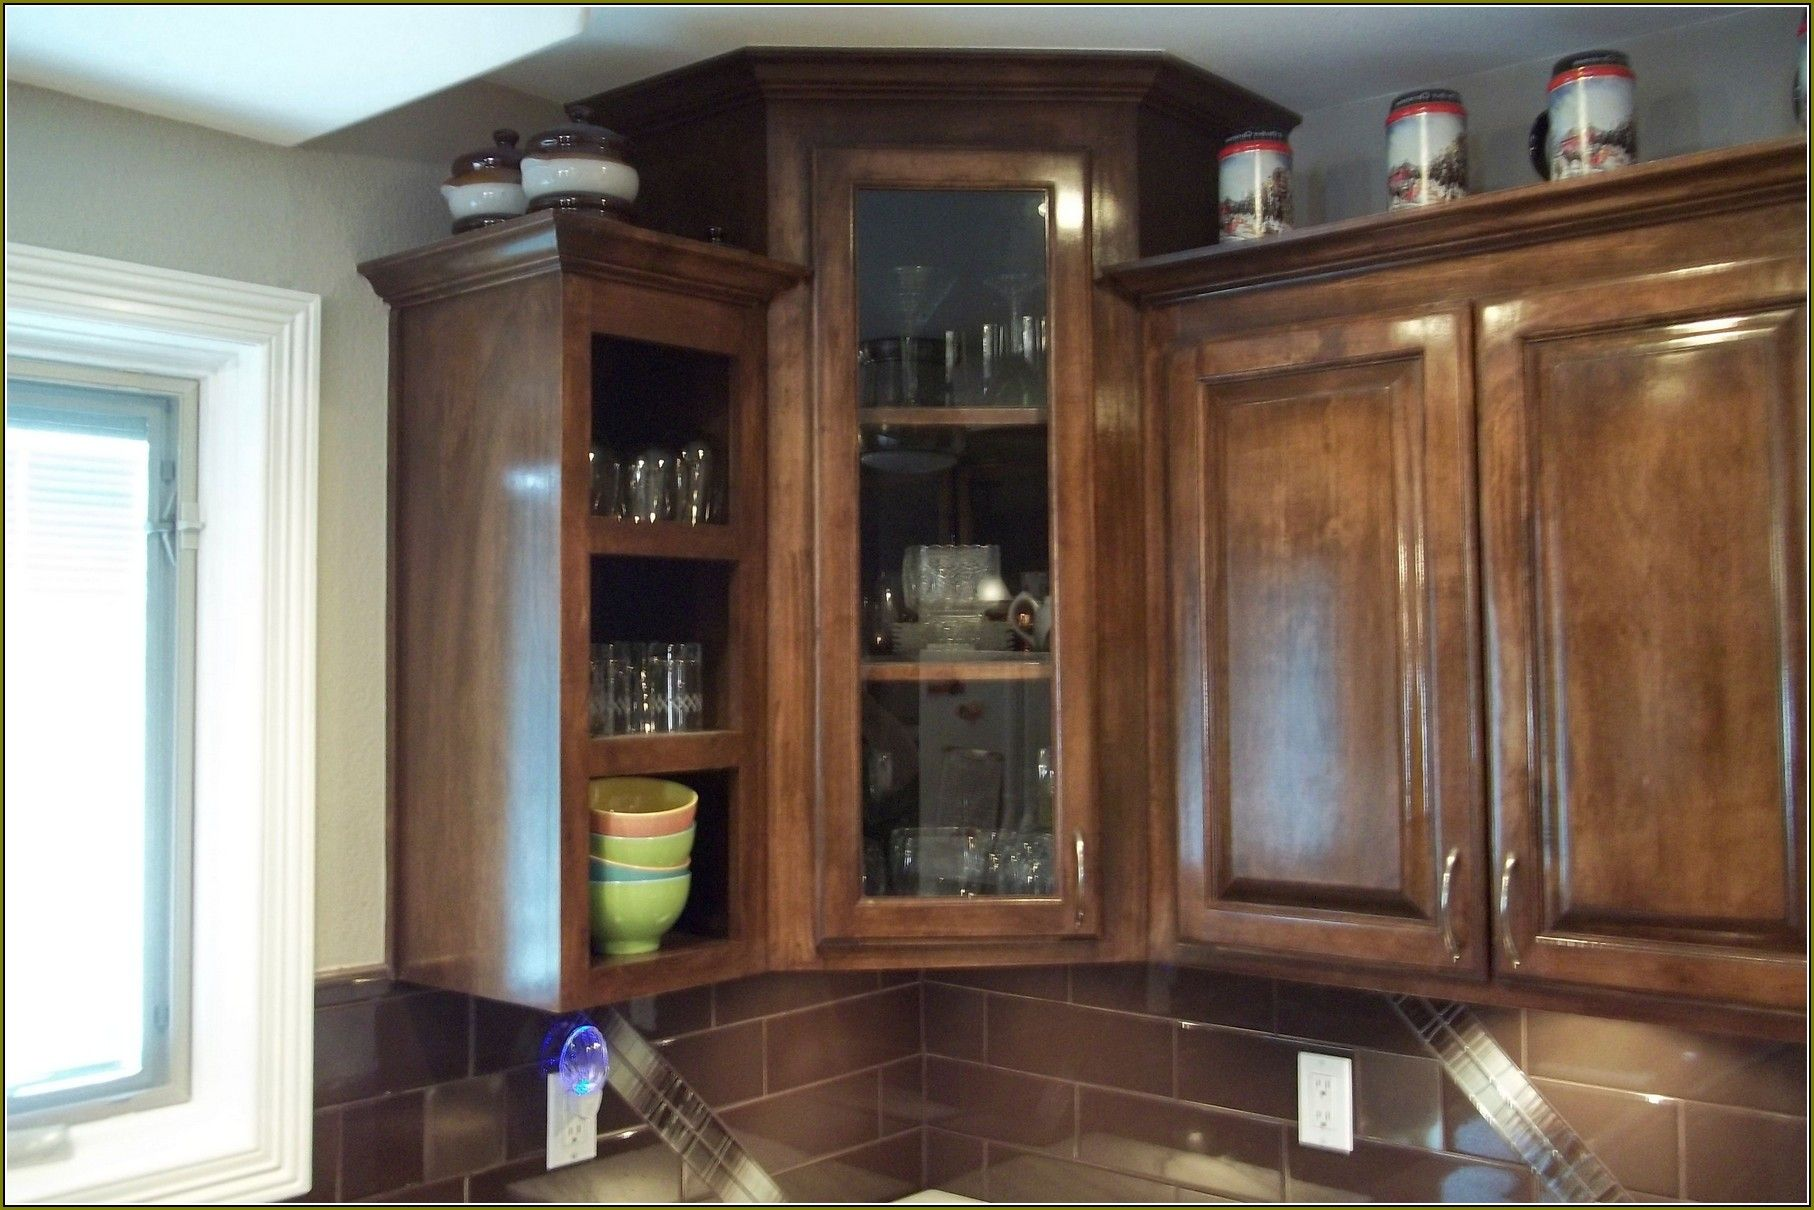 Cool Upper Corner Kitchen Cabinet Ideas Agreeable Inspiration To Prepossessing Upper Kitchen Cabinets Design Inspiration